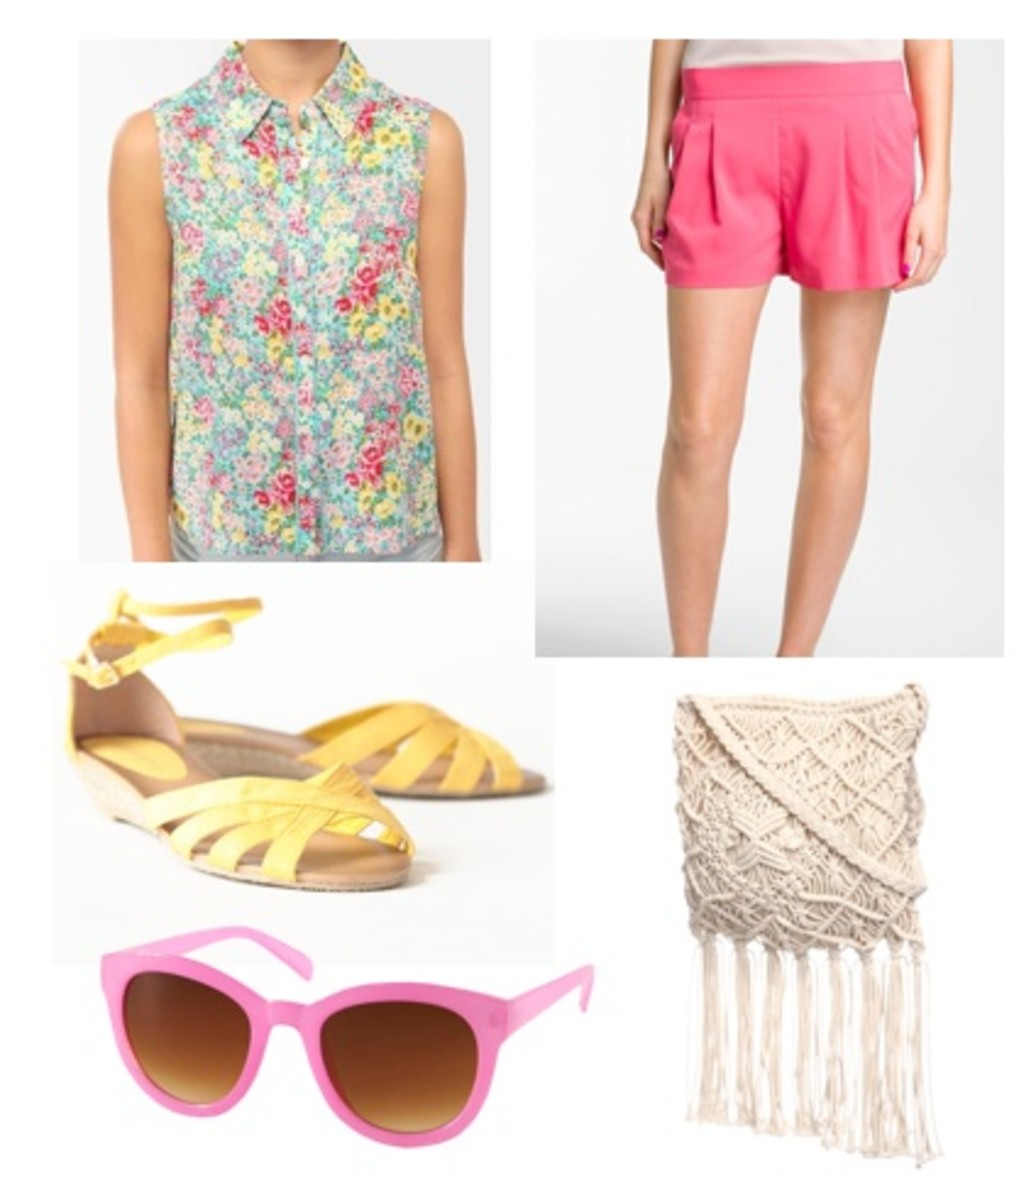 r-pink-magenta-shorts-pink-light-top-floral-print-yellow-shoe-sandals-white-bag-sun-travel-howtowear-fashion-style-spring-summer-outfit-weekend.jpg